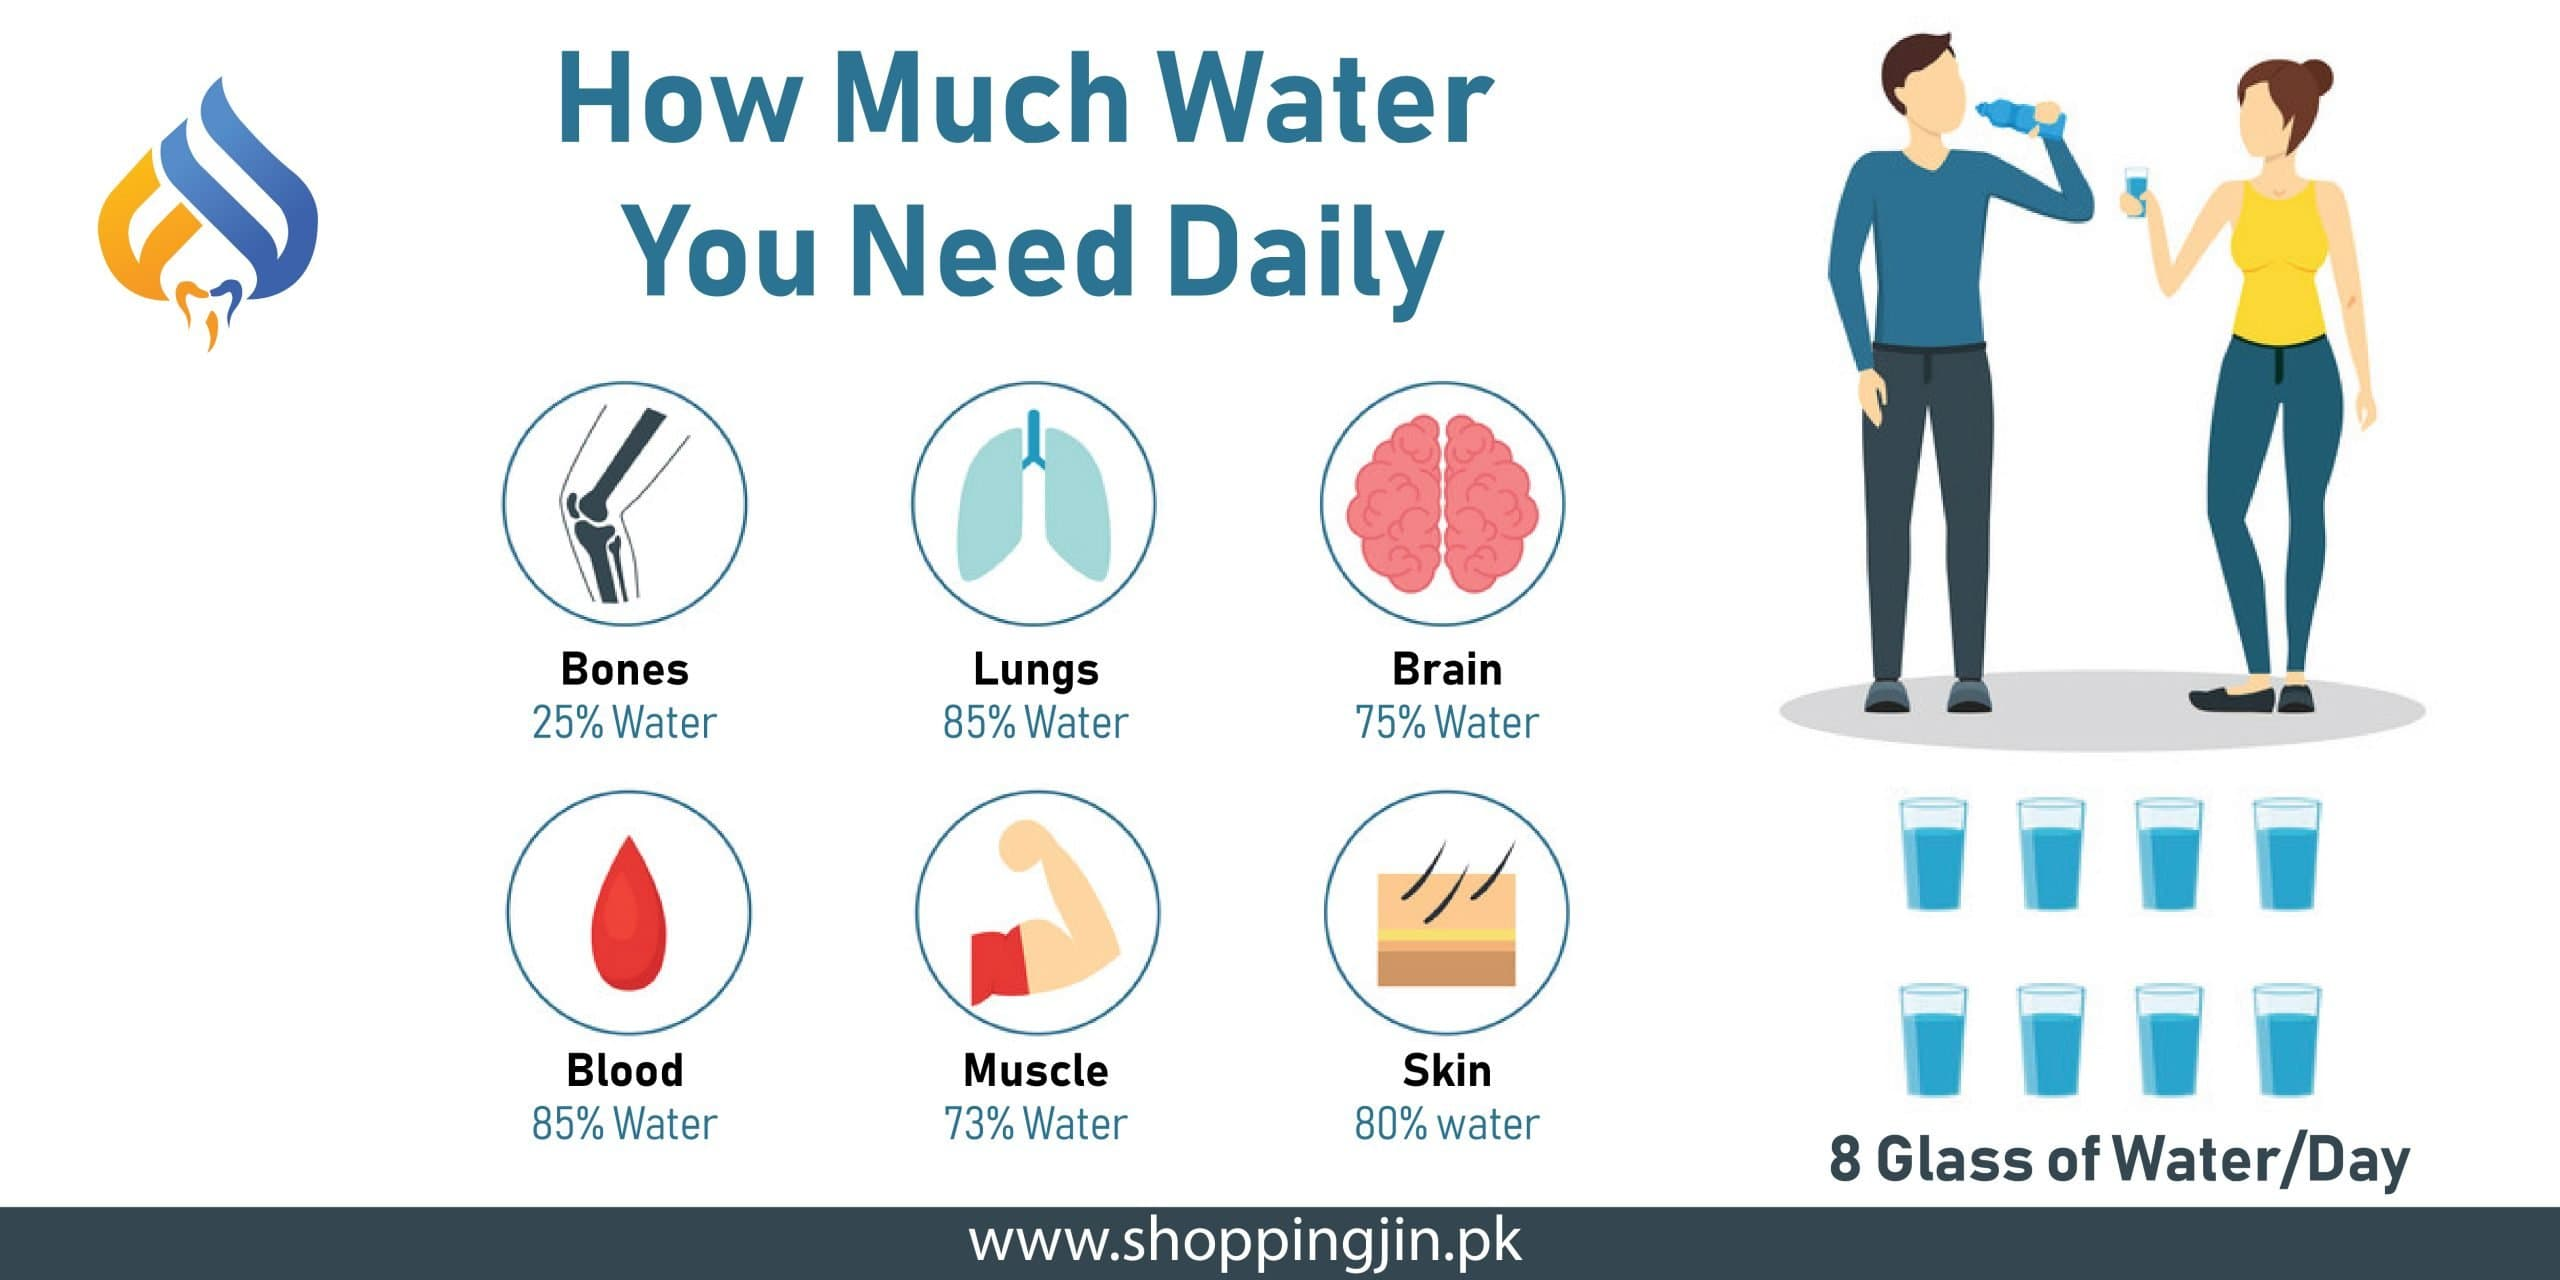 How much water you need daily